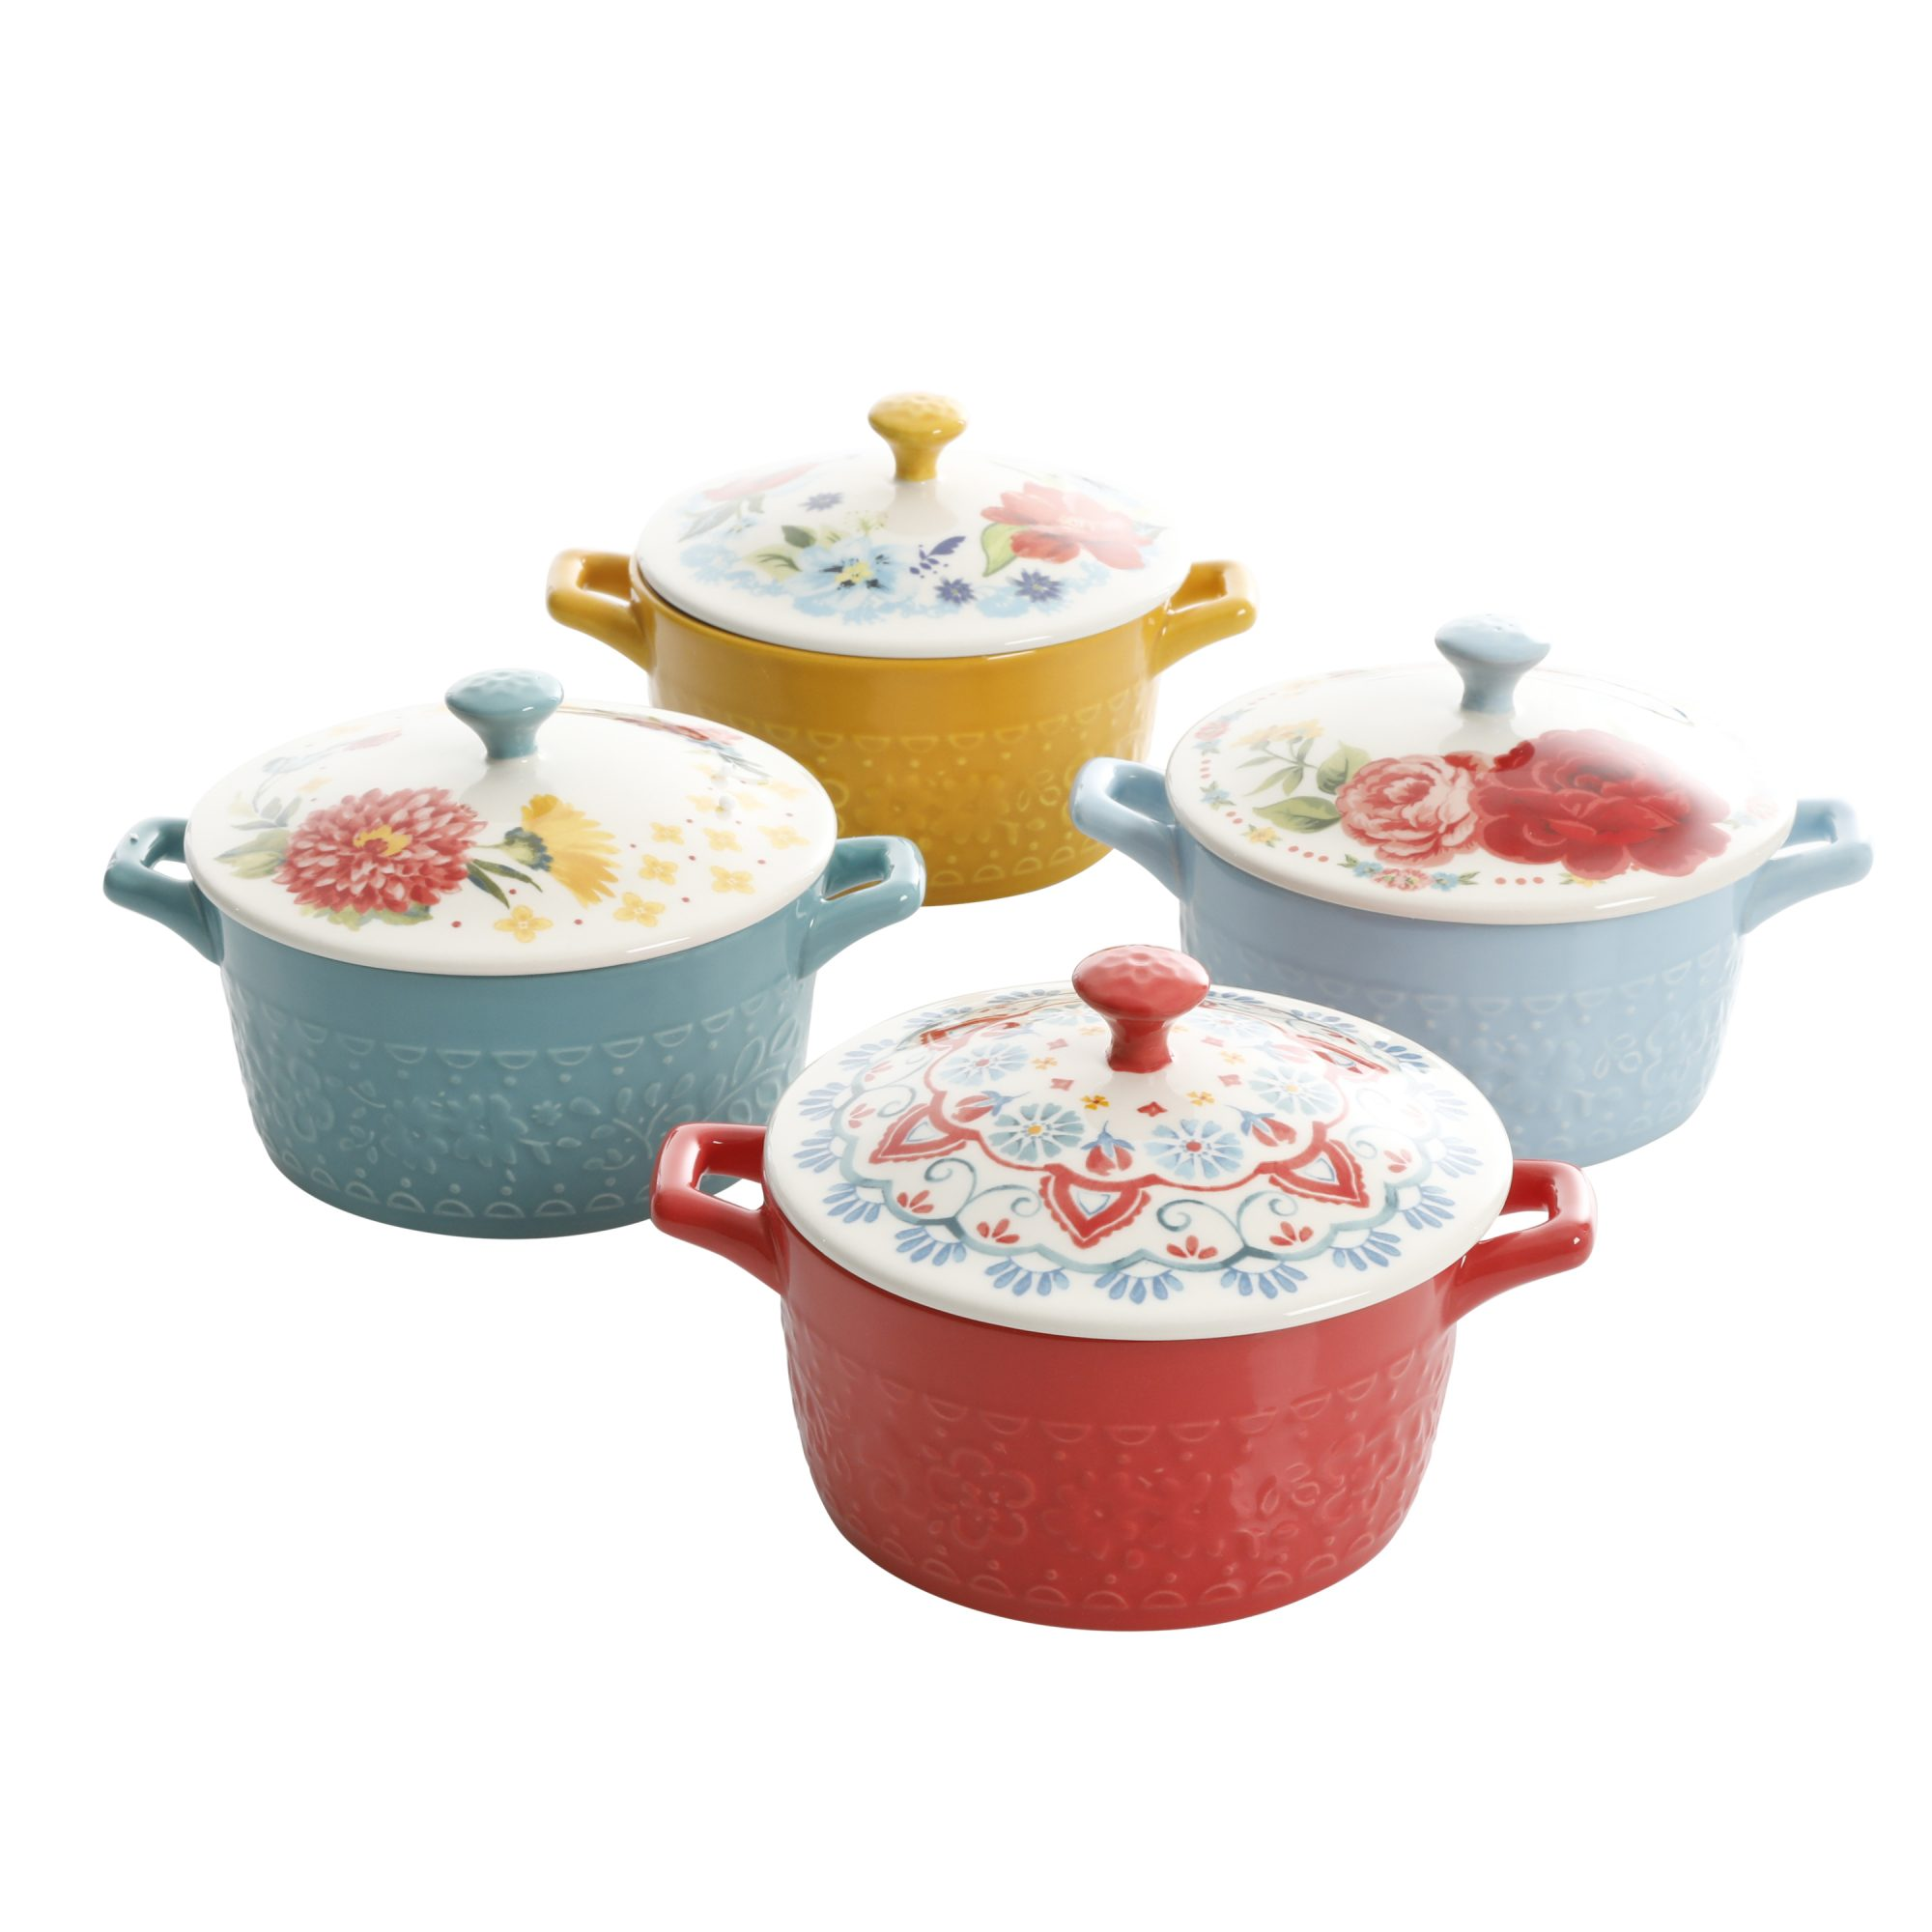 mini casserole dishes with a pattern lid